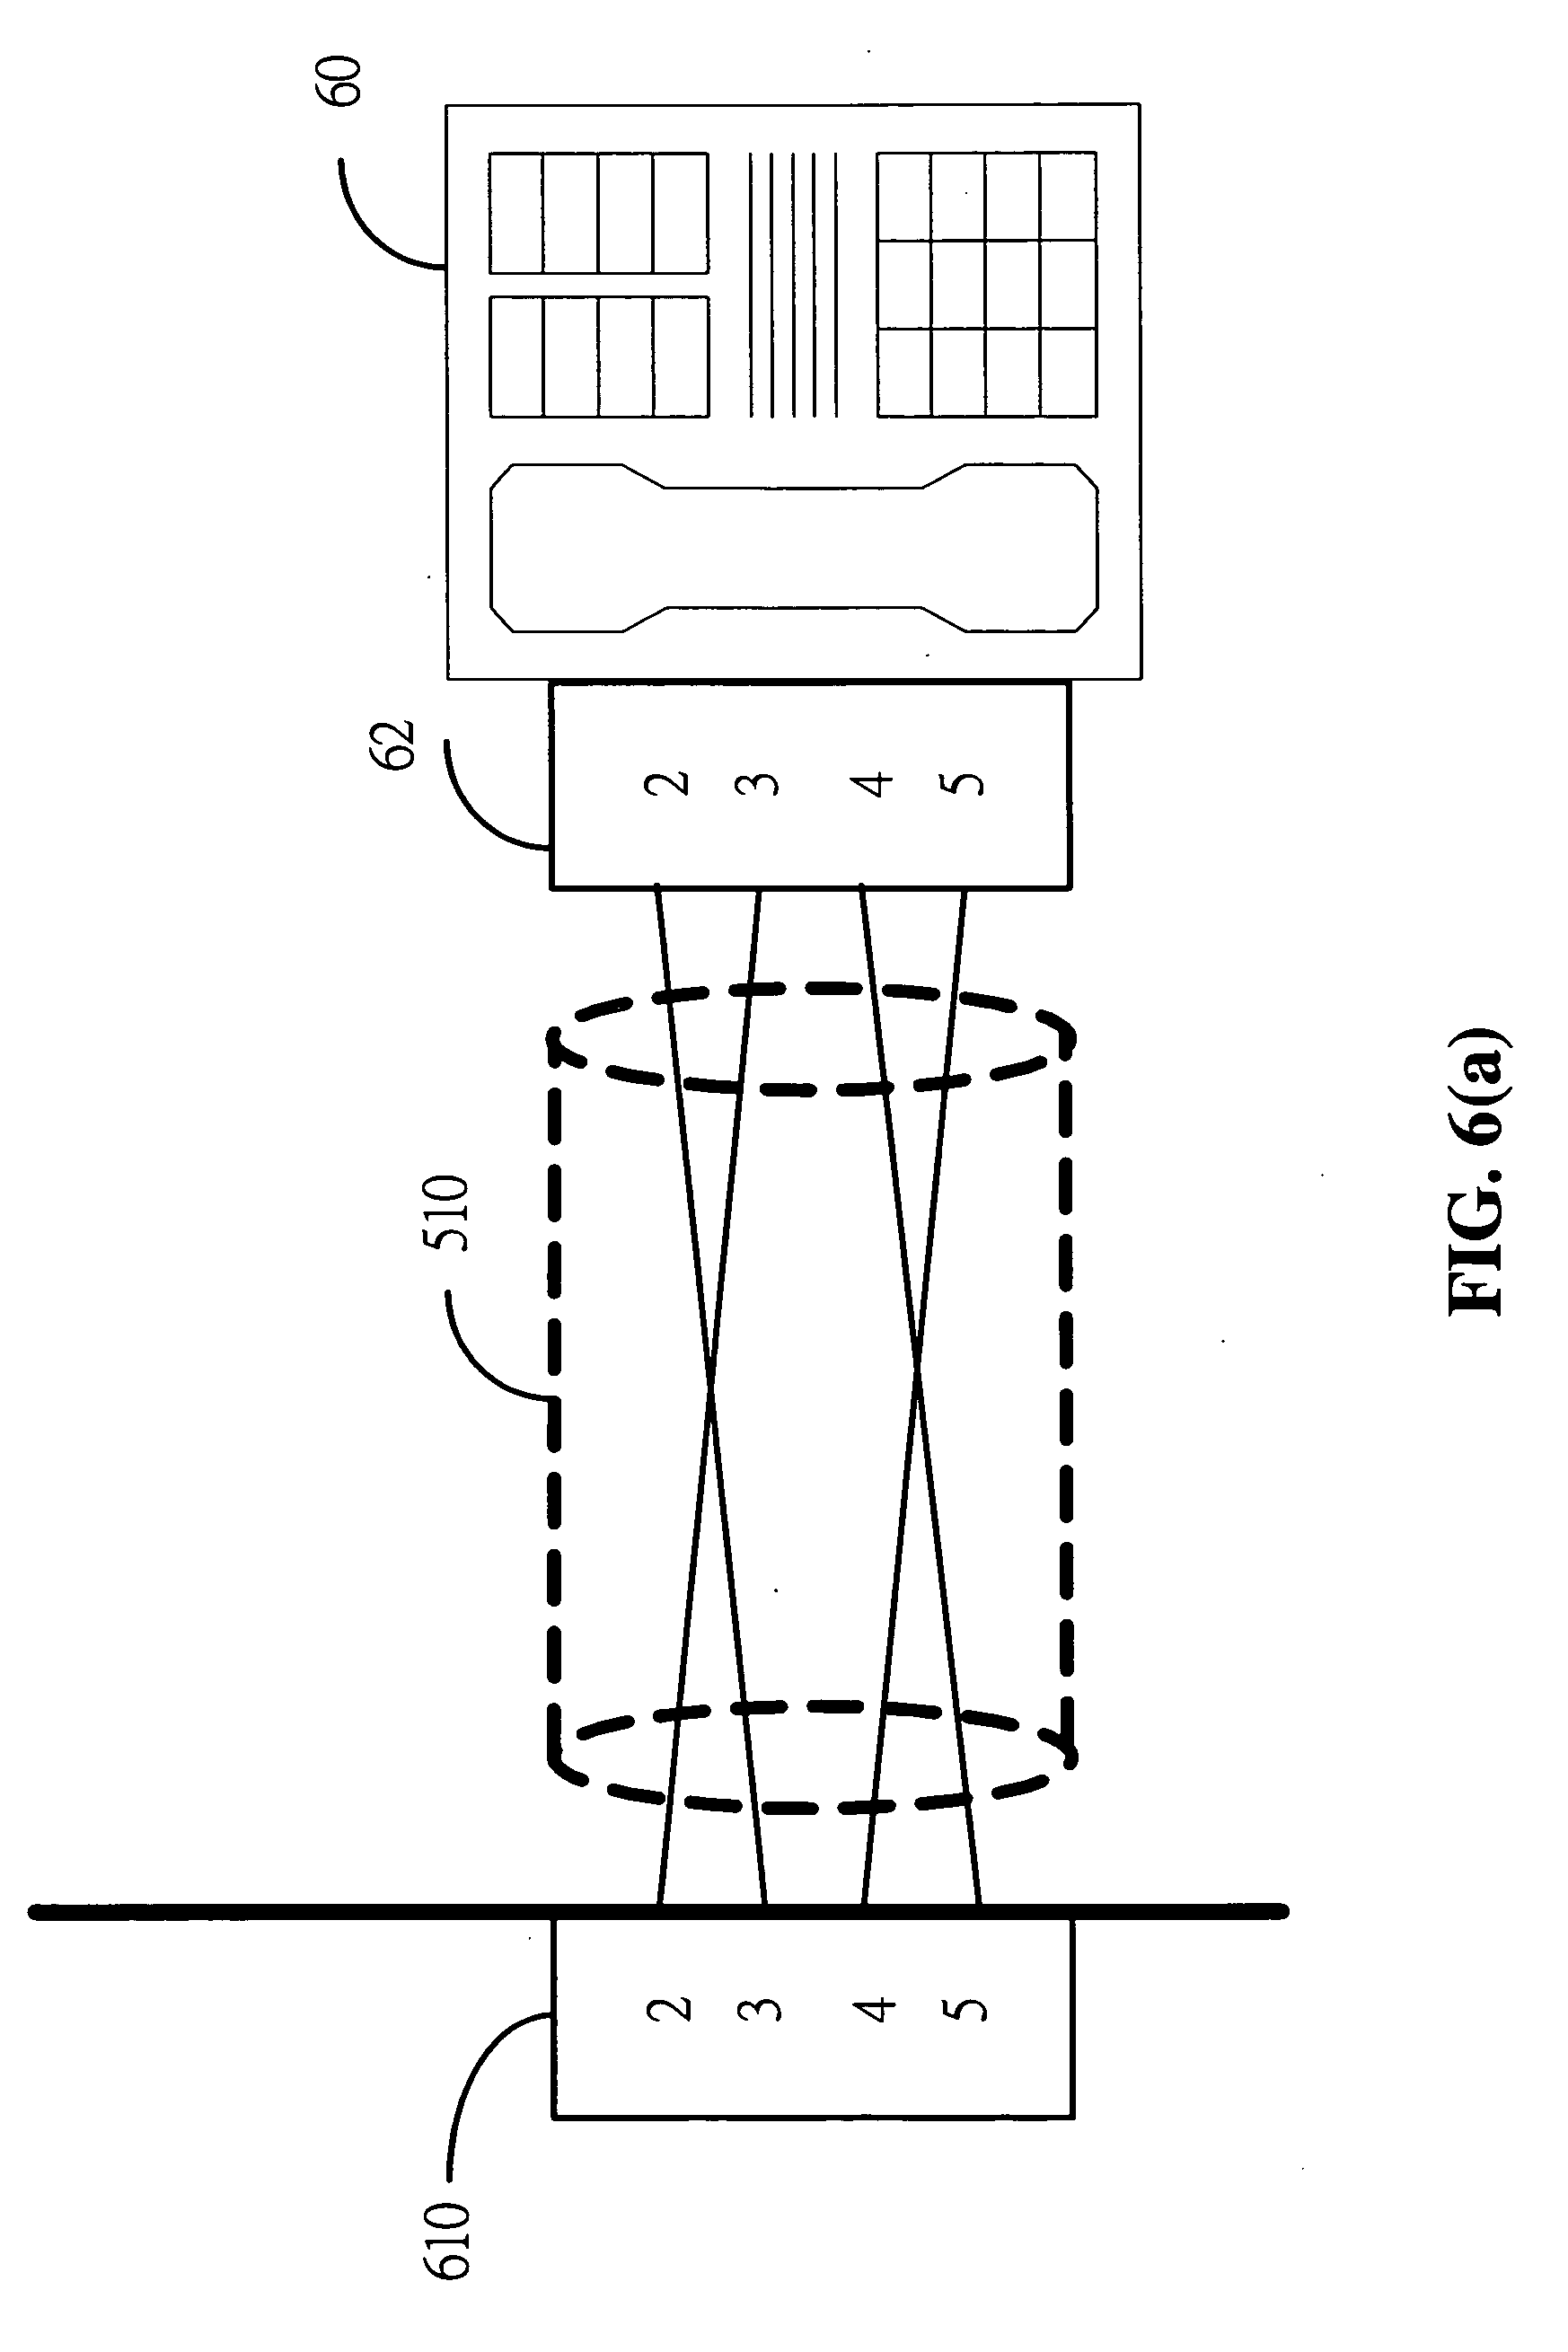 patent us20060140178 - method for connecting routing device in existing wiring